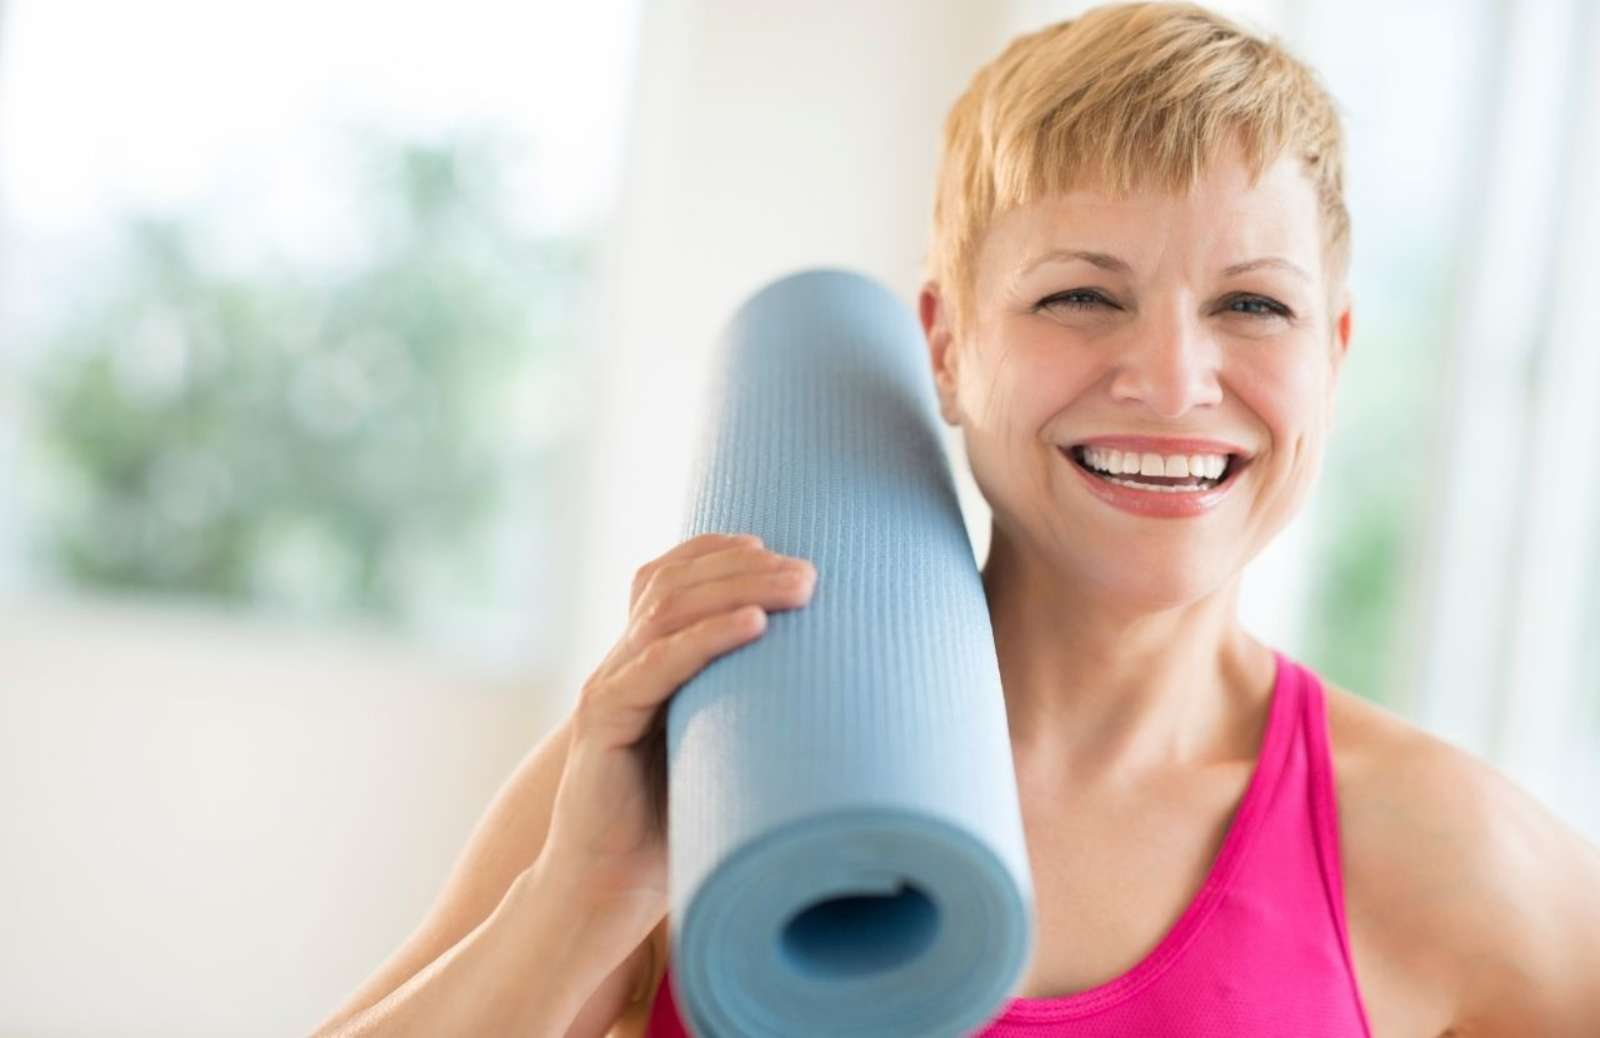 Smiling woman holding rolled-up yoga mat